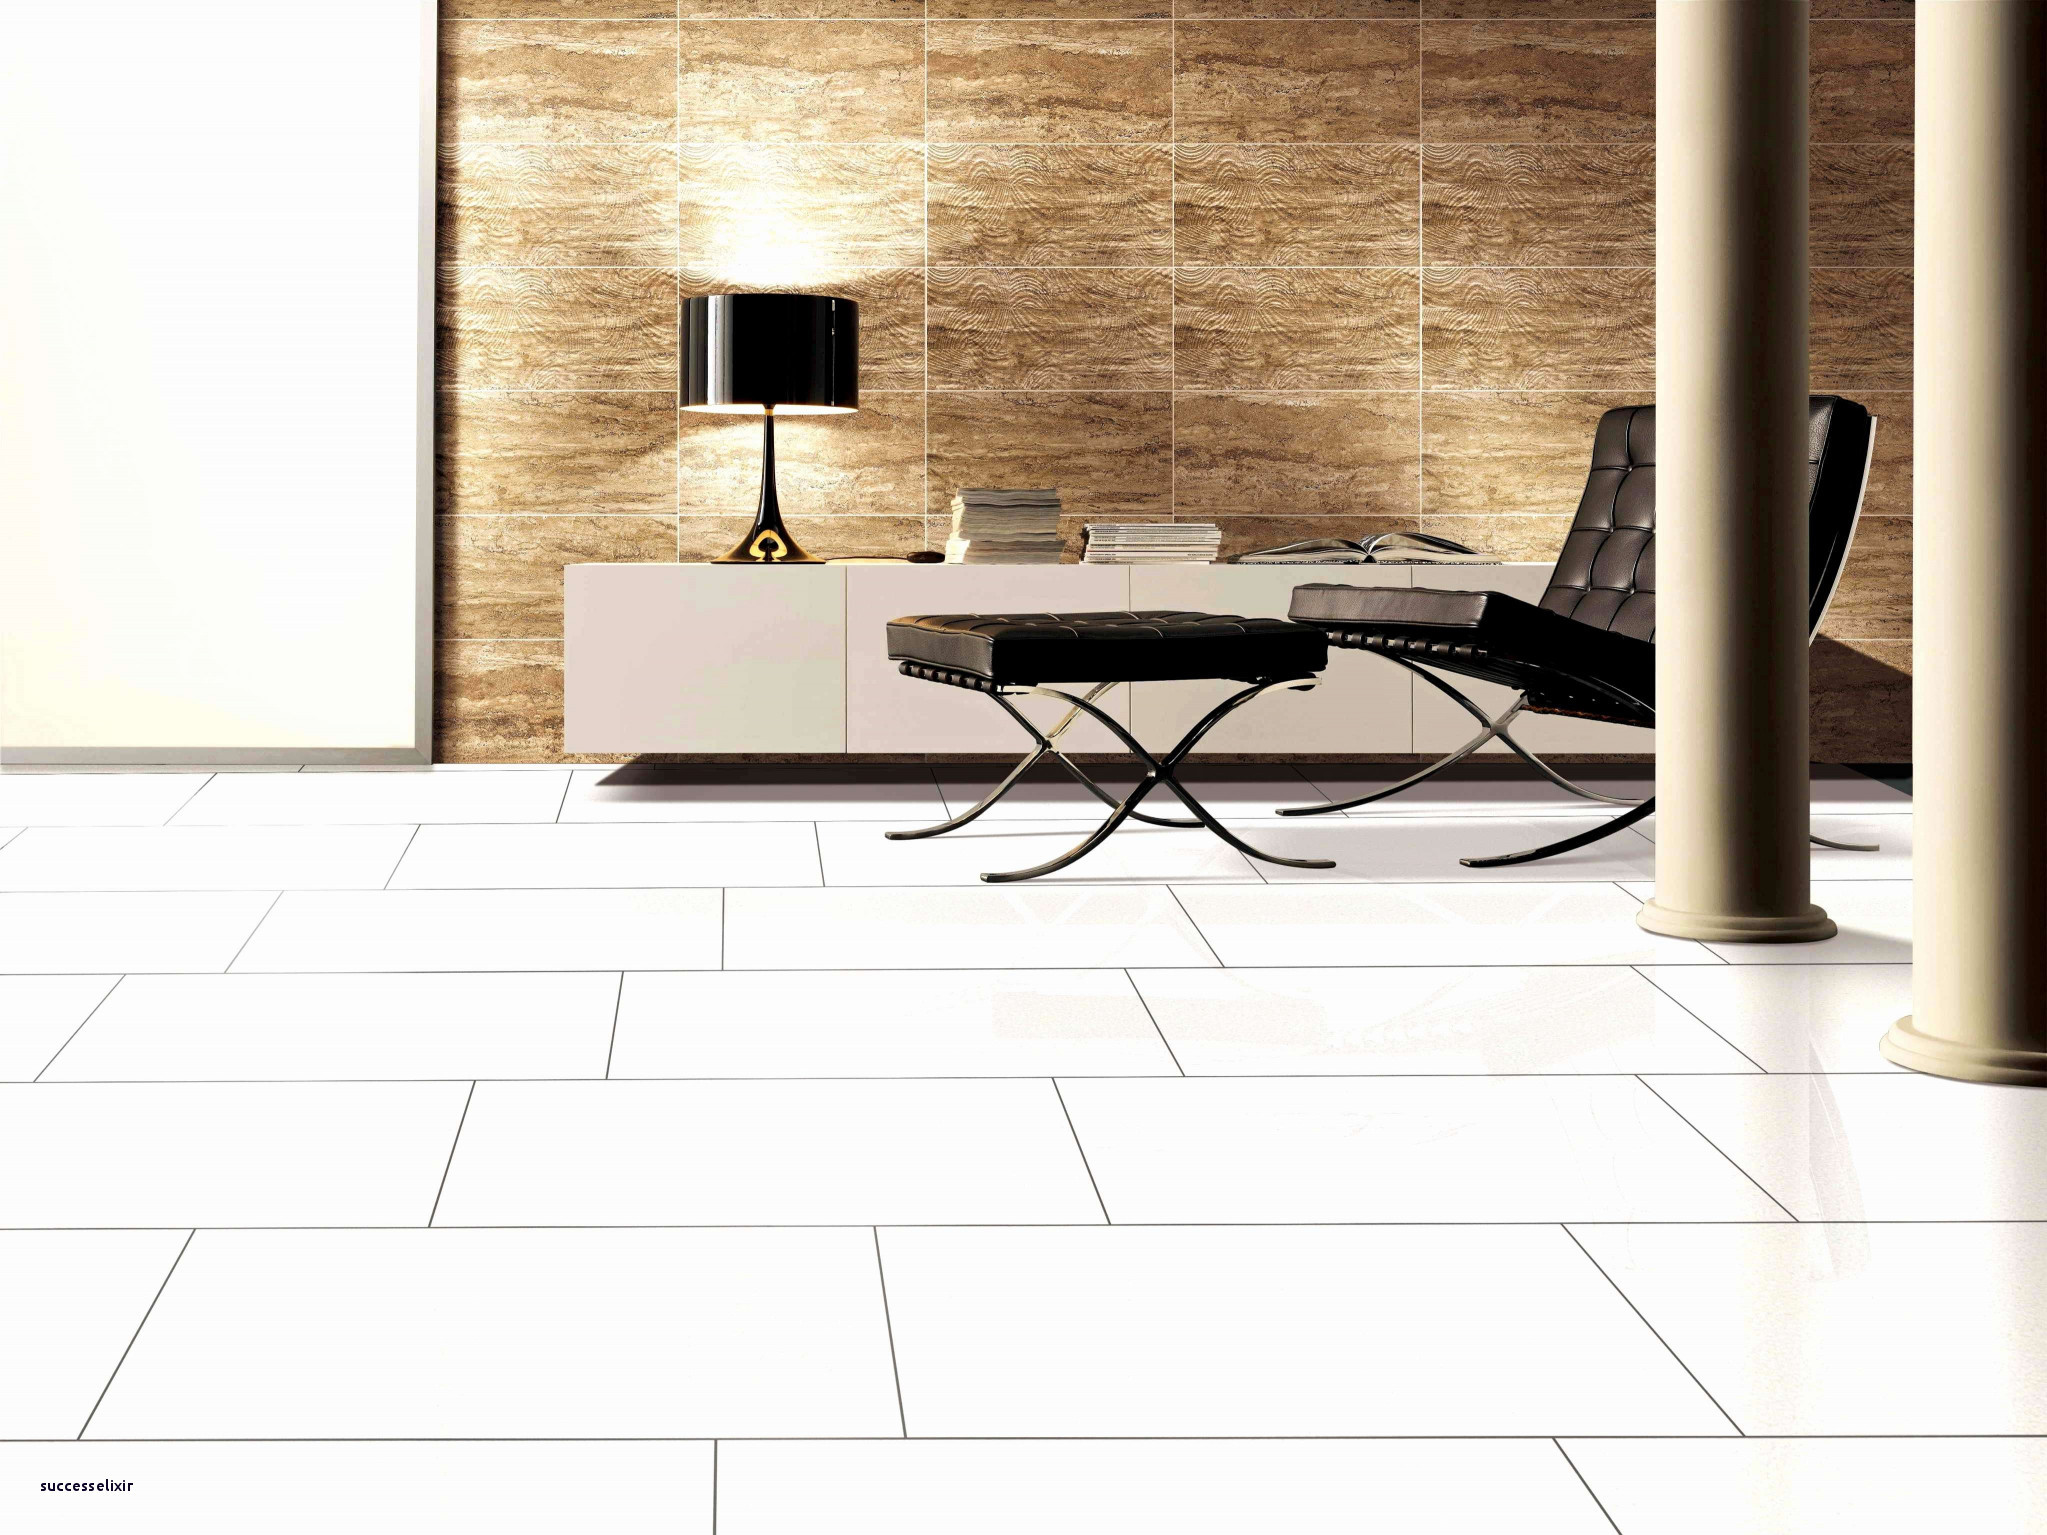 images of hardwood floor colors of 27 incredible tile manufacturers ideas for new tile floor shower floor ideas best luxury new new tile floor heating lovely